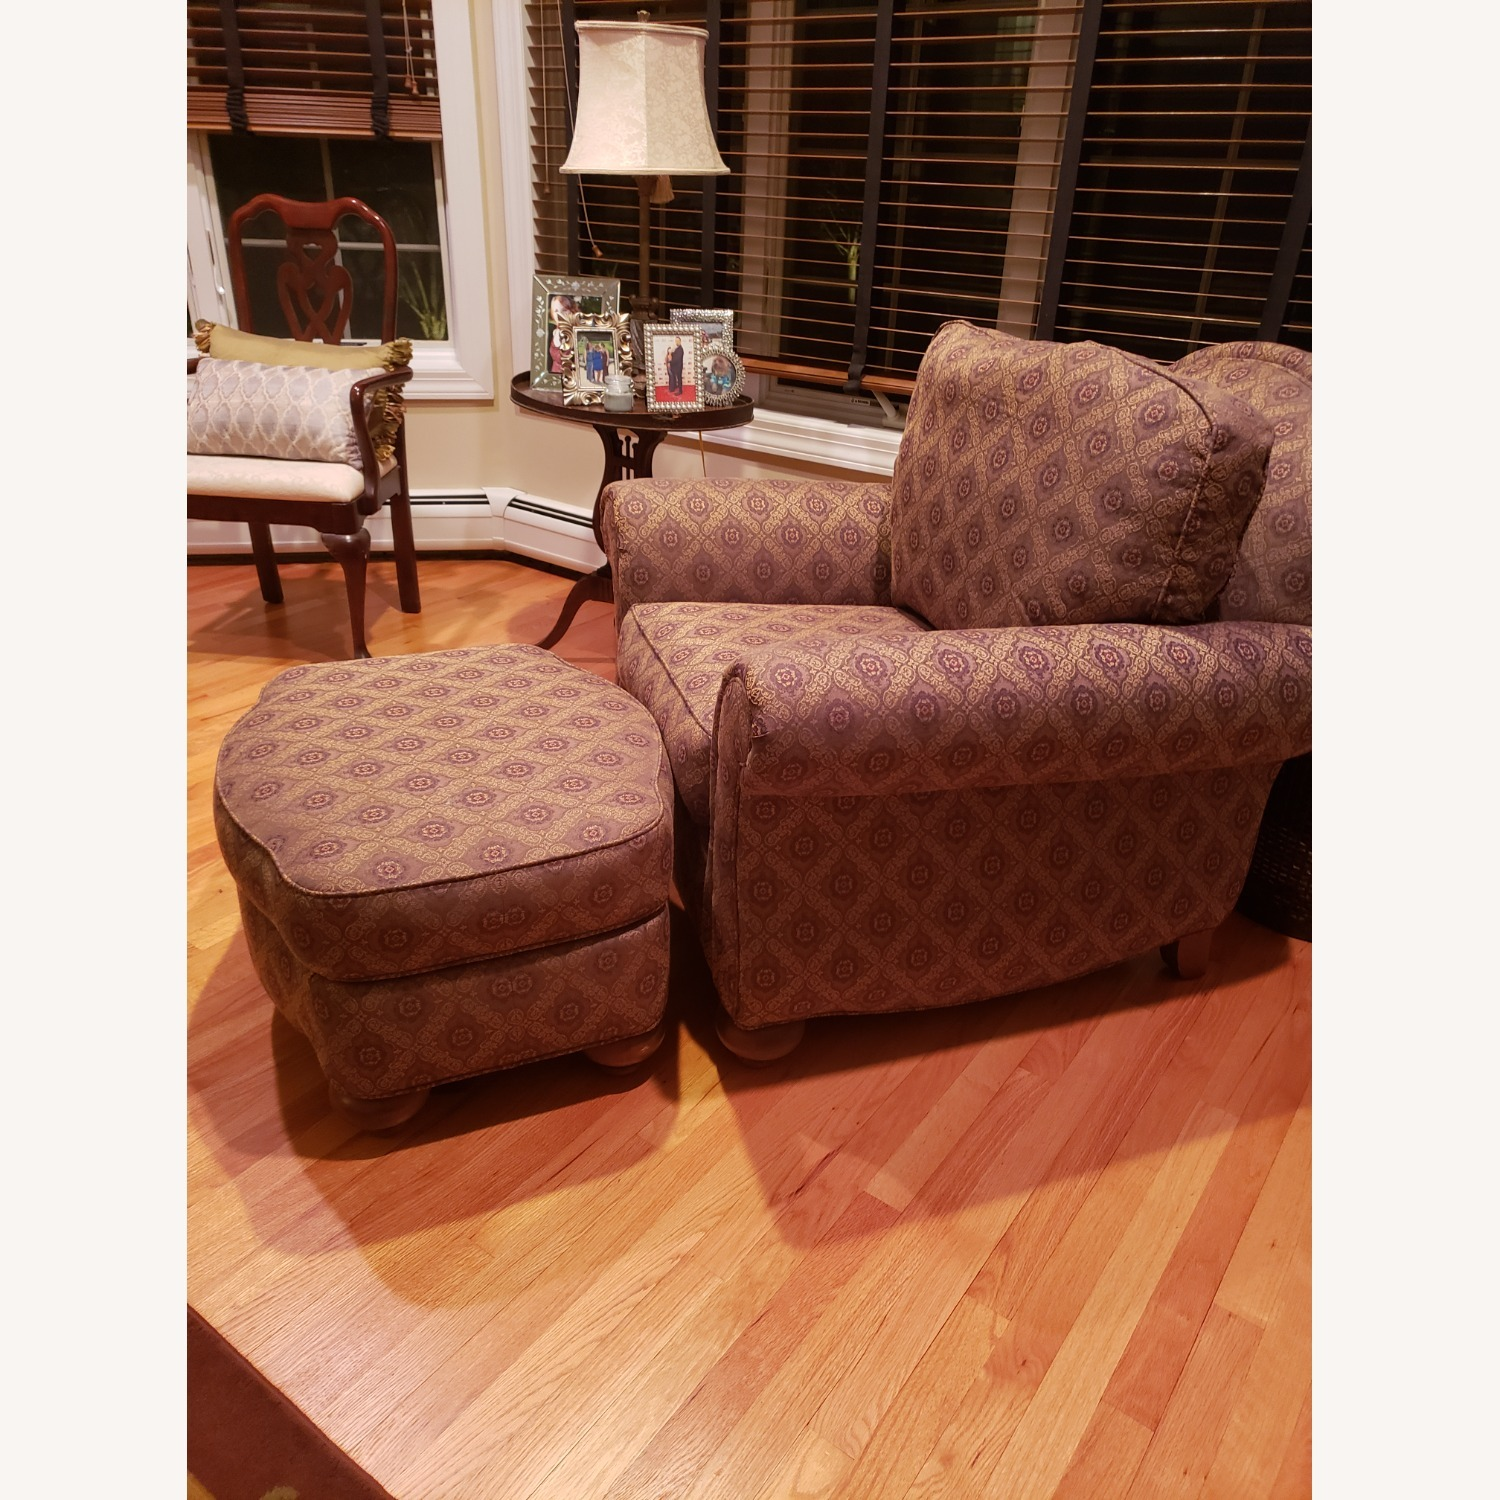 Ethan Allen Chair with Ottoman - image-3